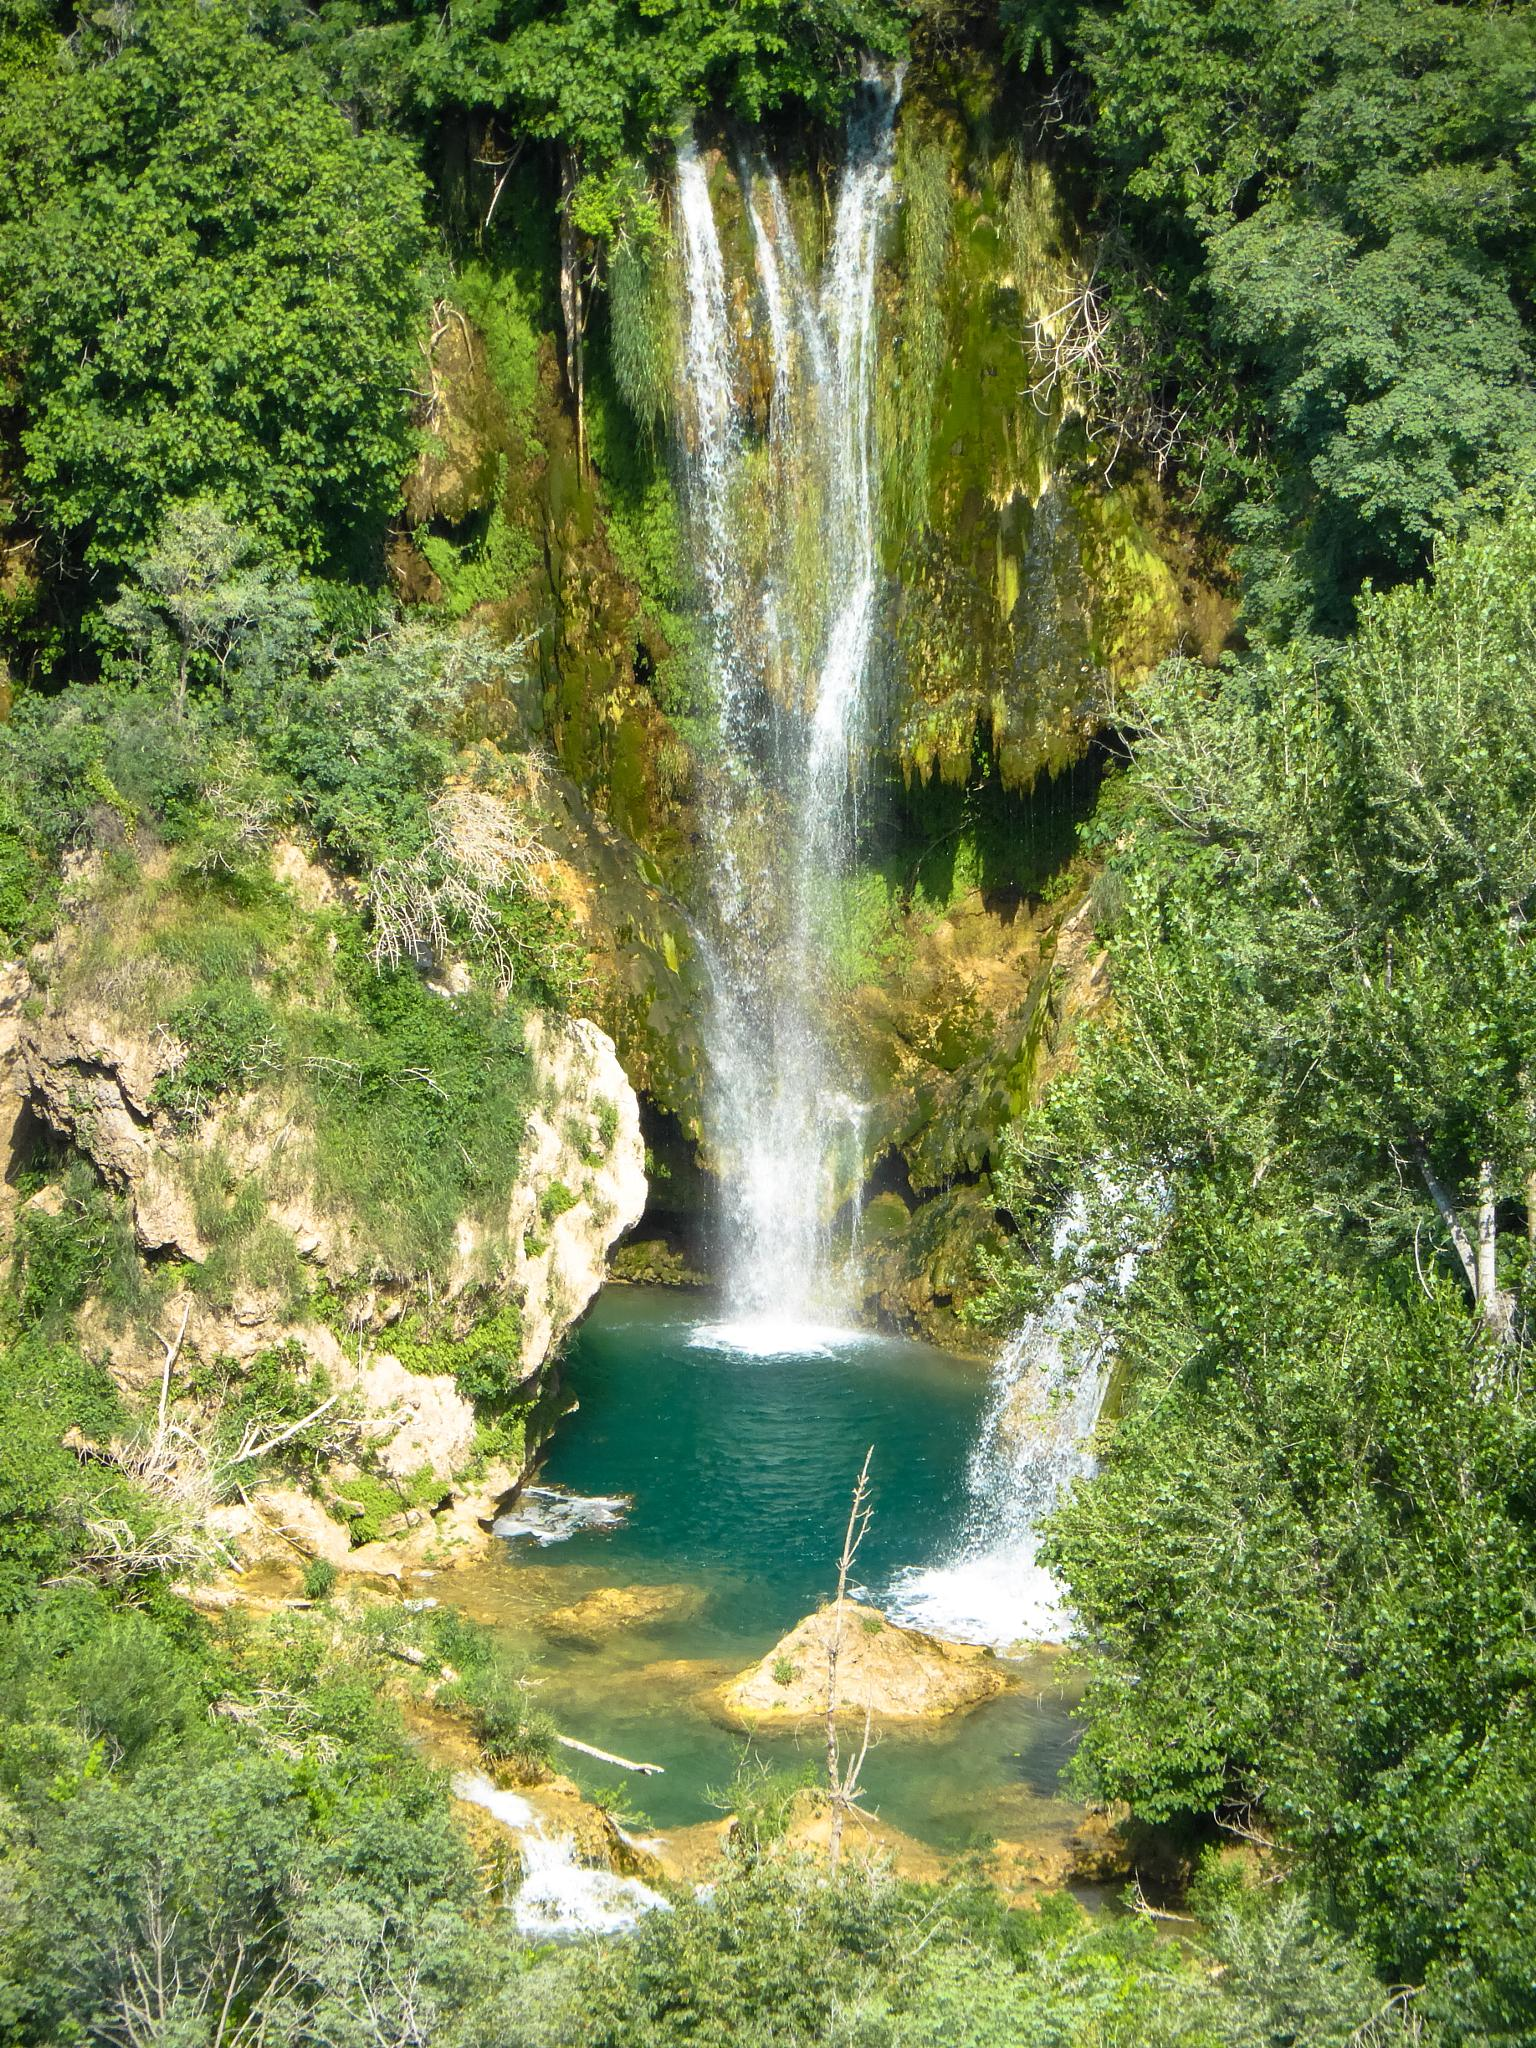 Waterfall on the Krka River by Babak A